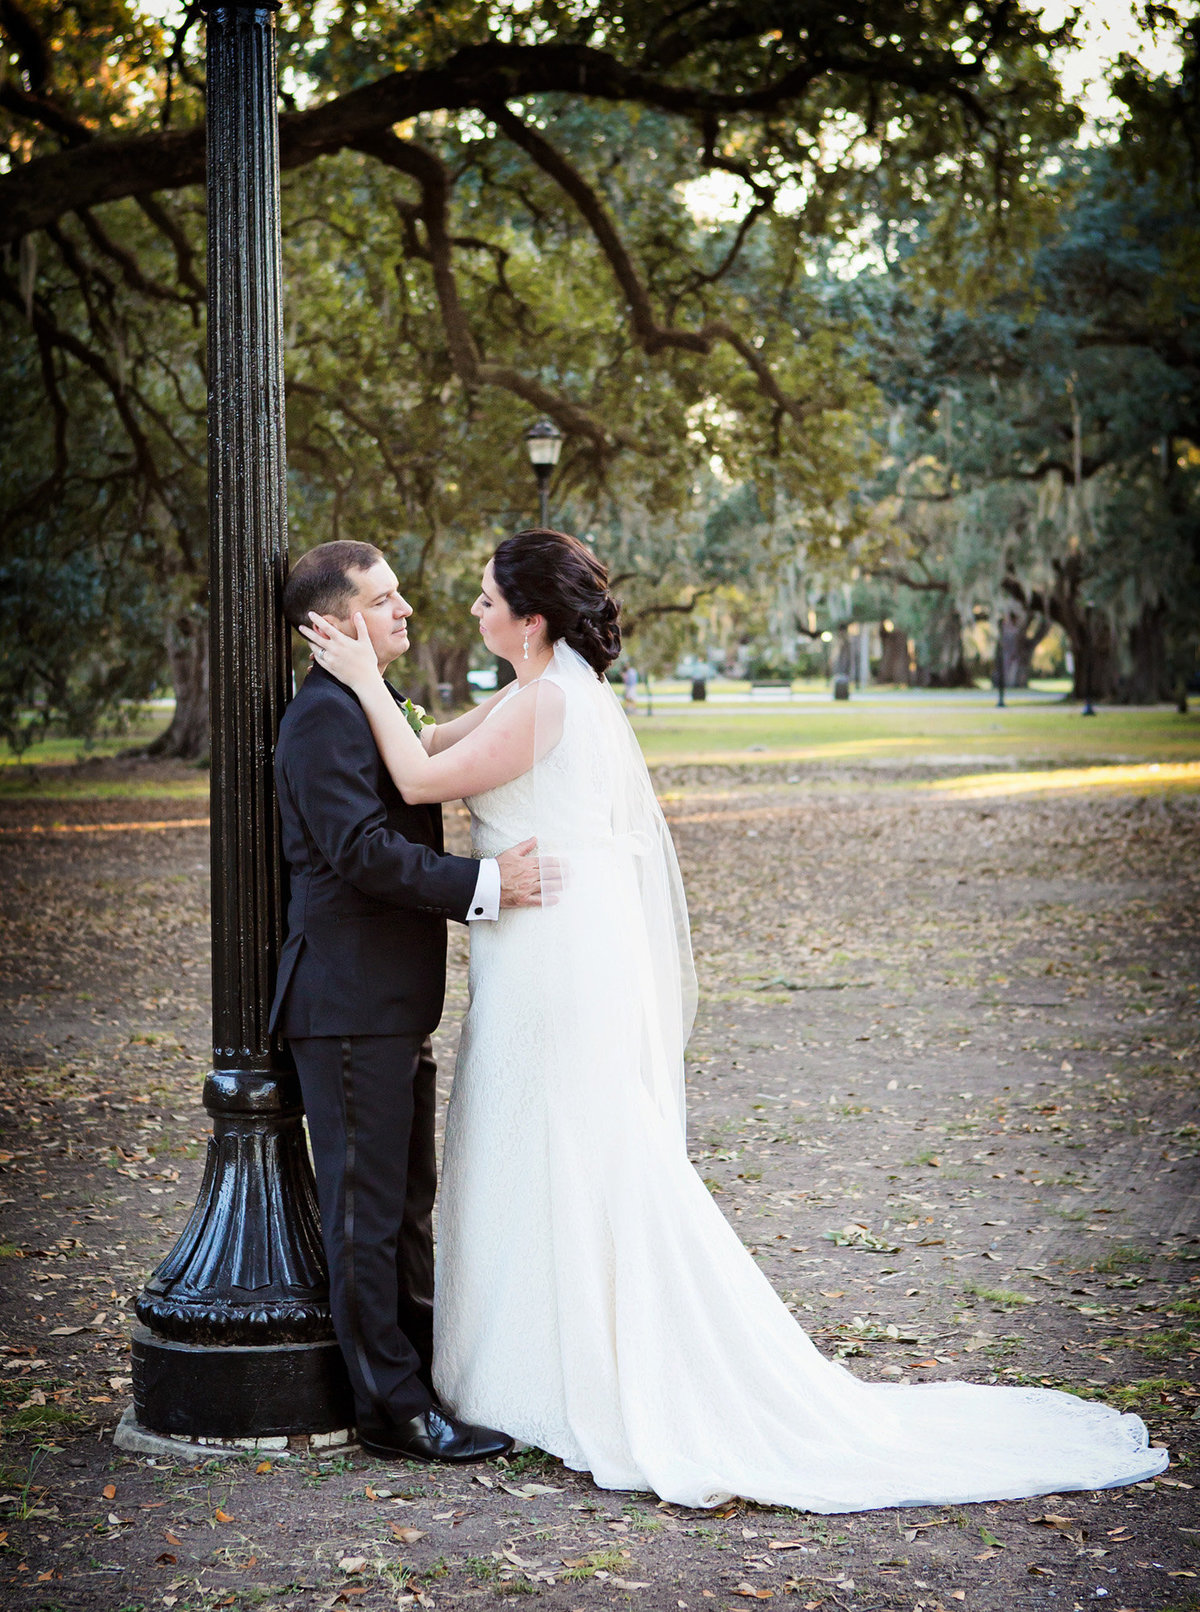 Audubon-Park-wedding-by-Becky-Cooper-Photography